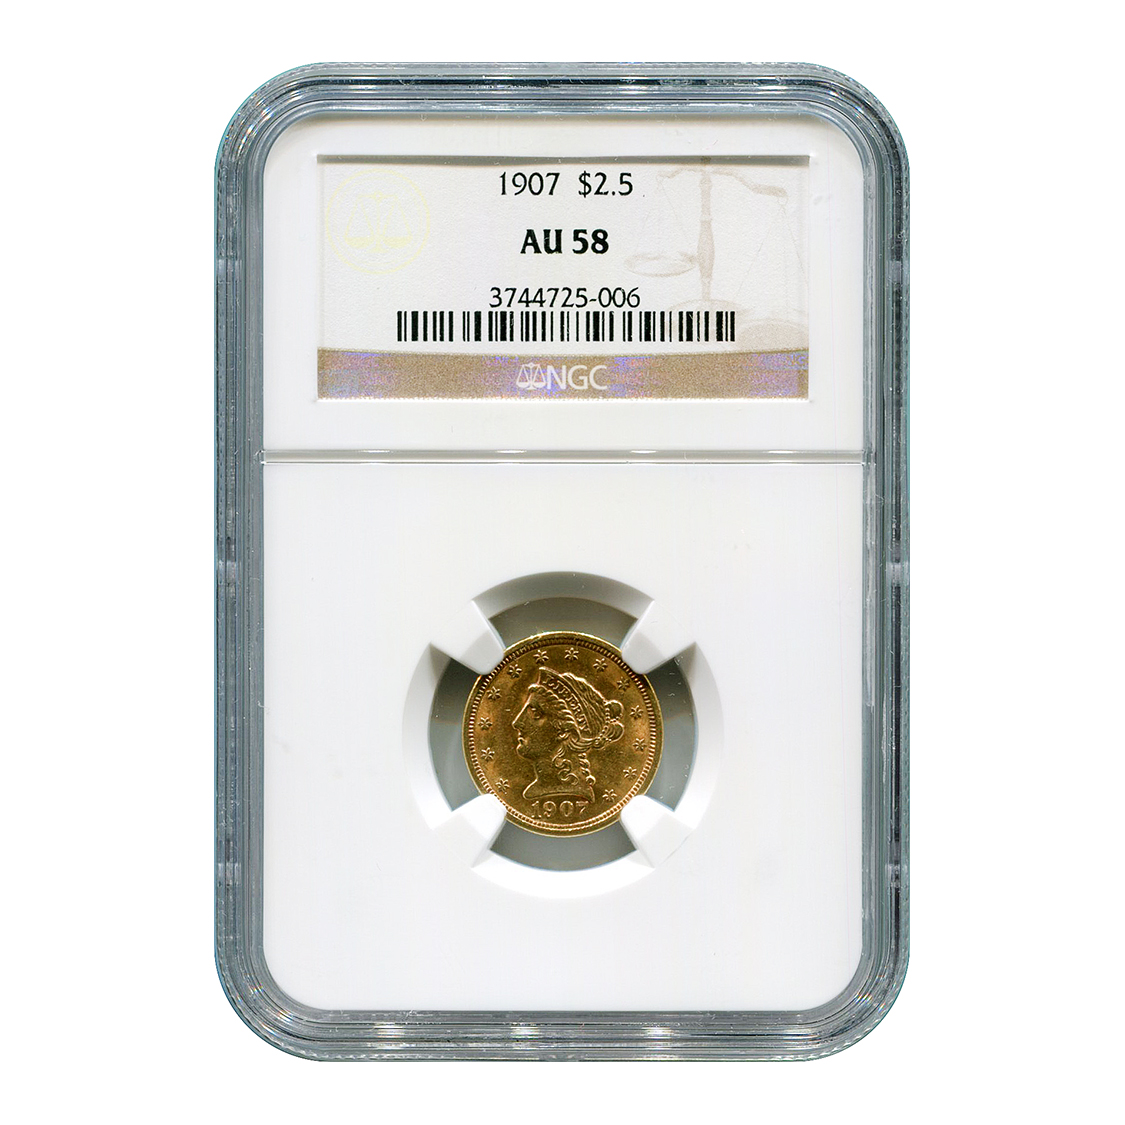 Certified US Gold $2.5 Indian 1907 AU58 NGC